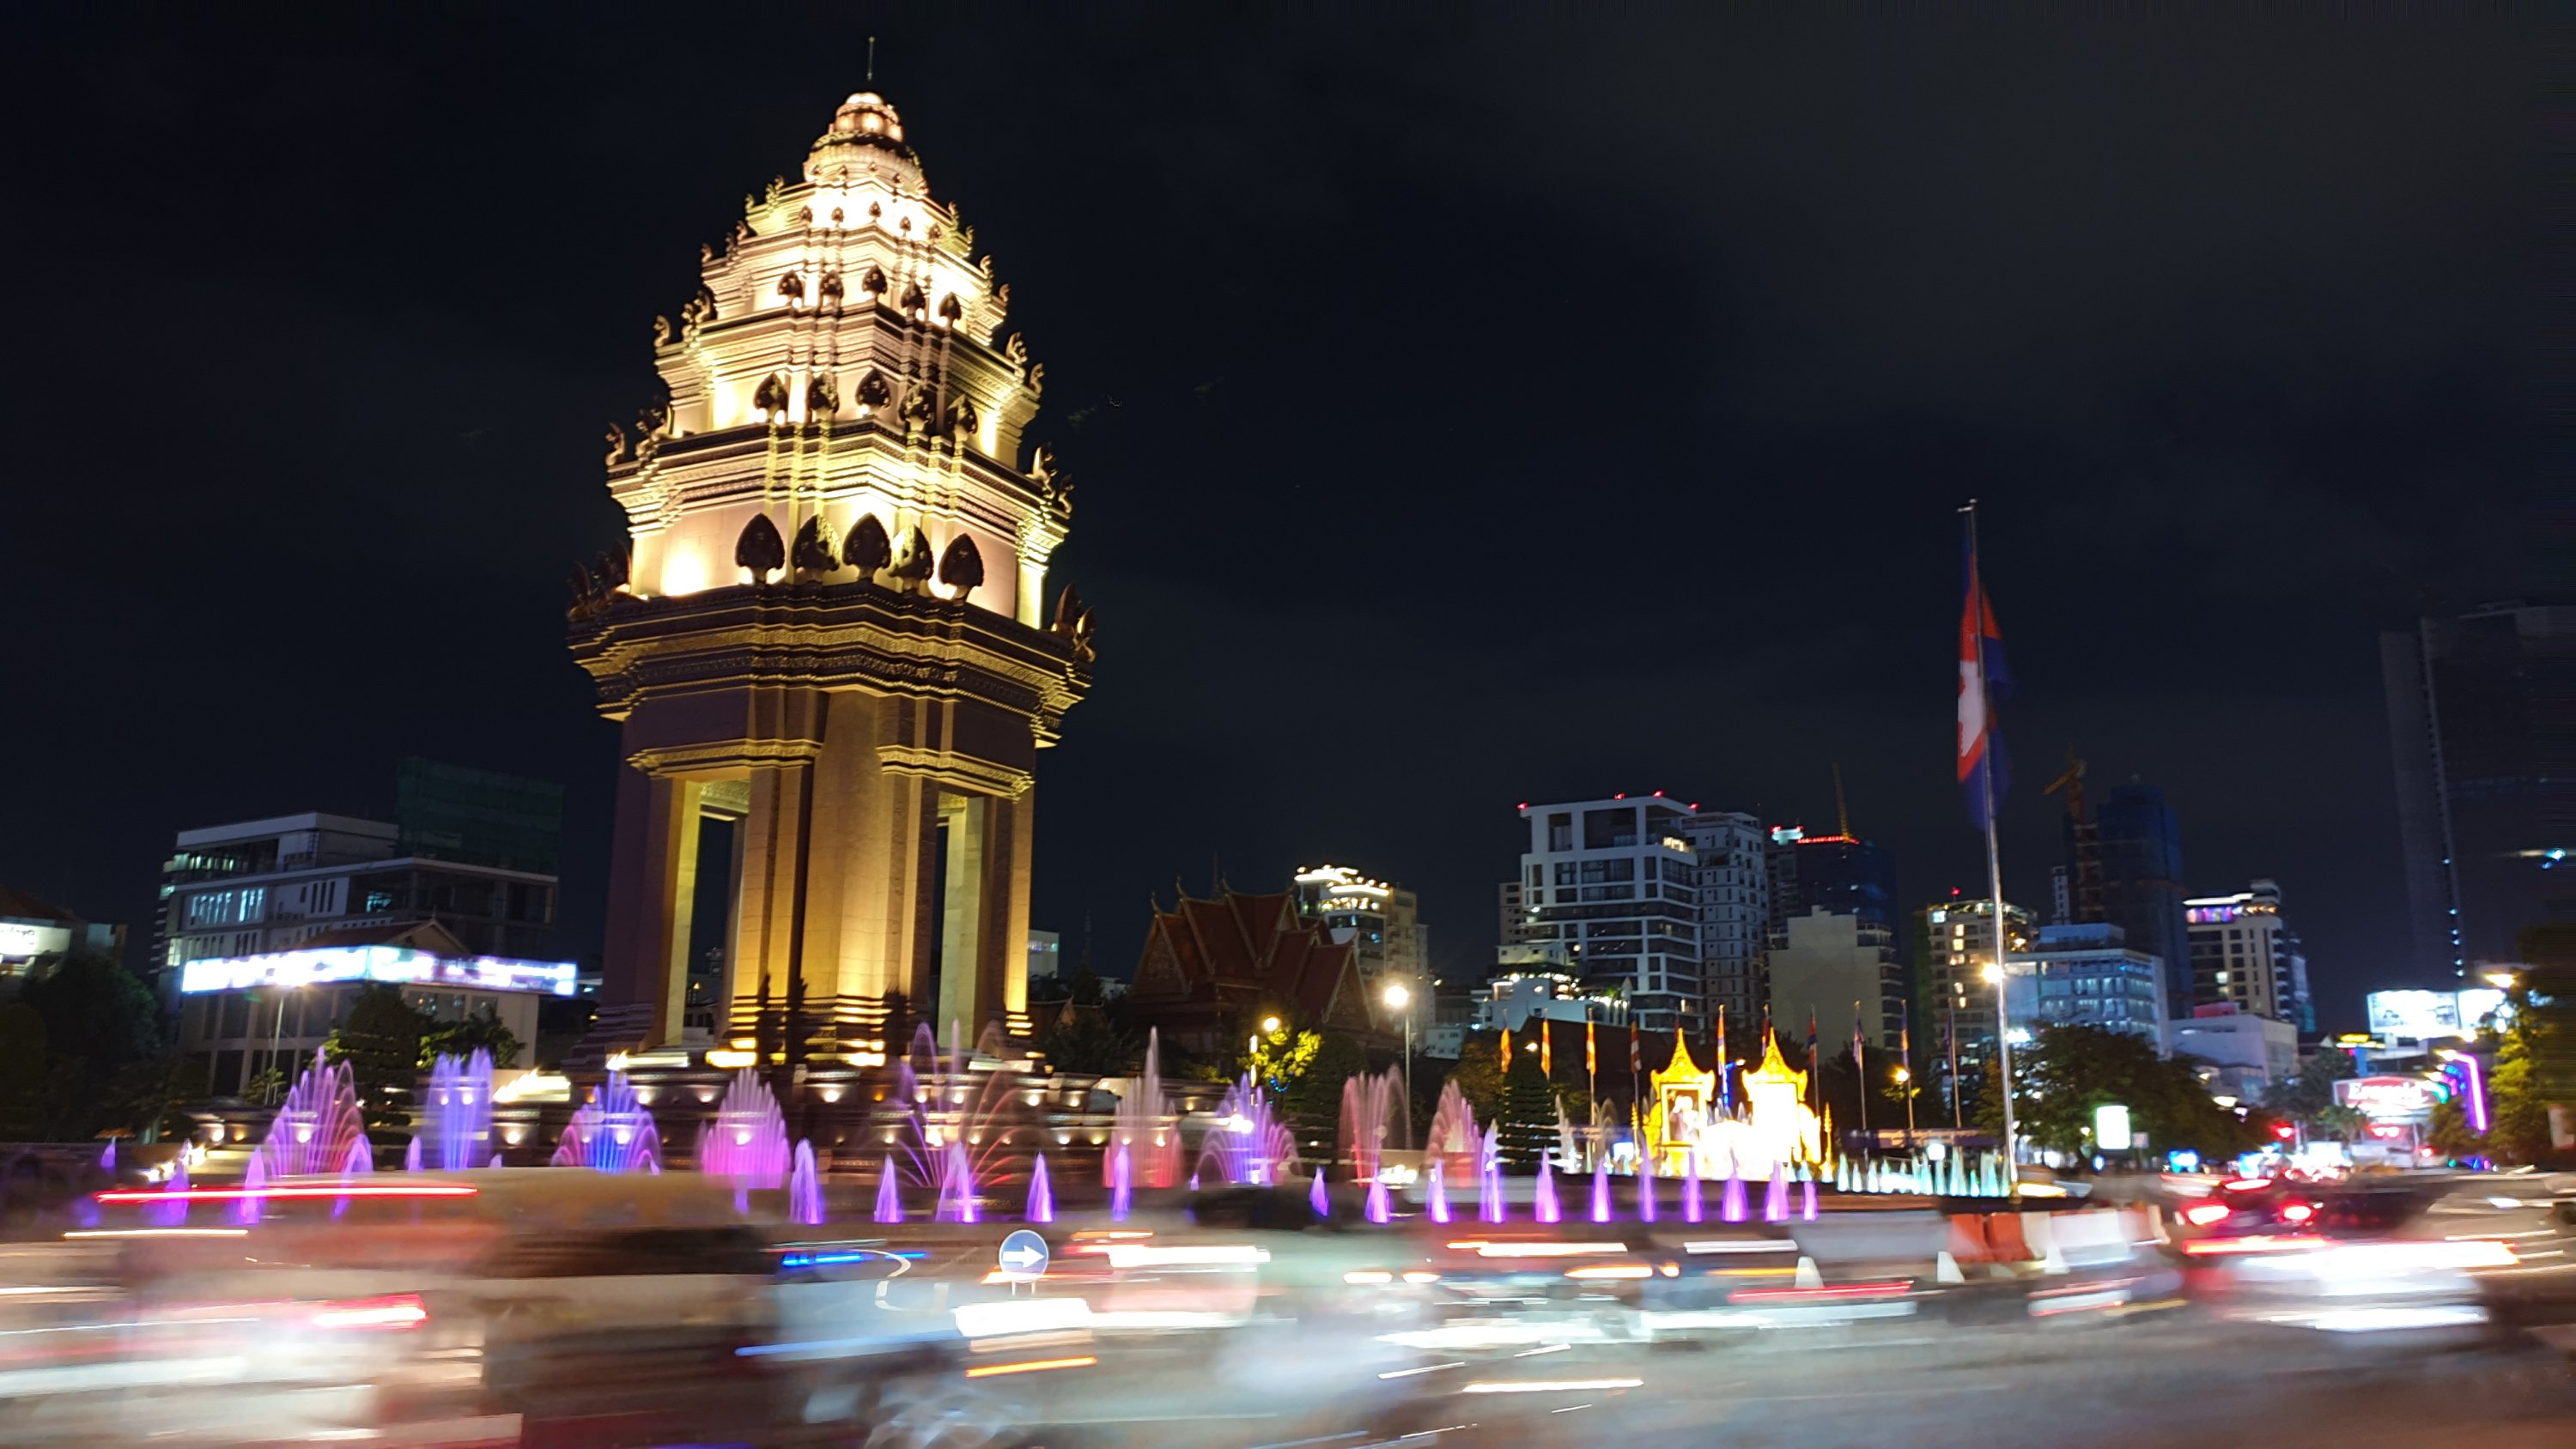 Independence Monument, Phnom Penh at night